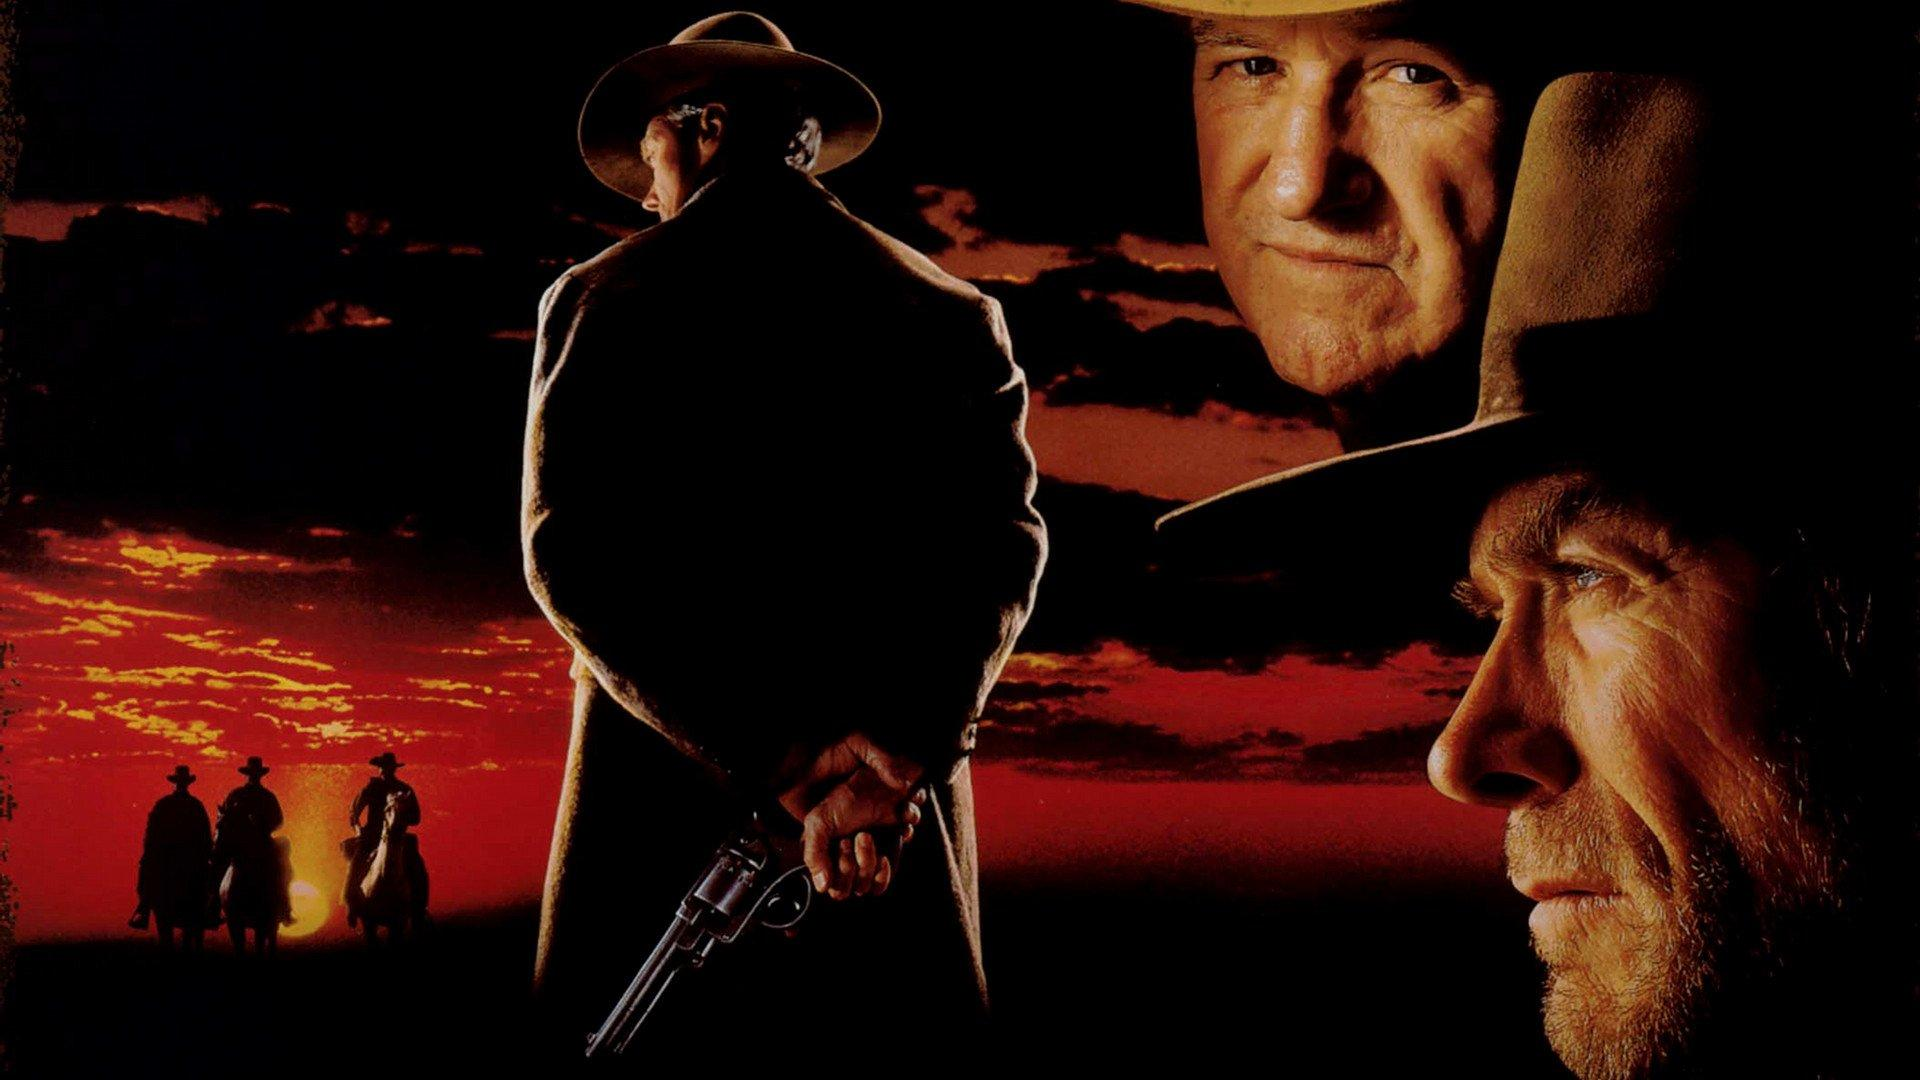 Unforgiven Wallpapers and Backgrounds Image